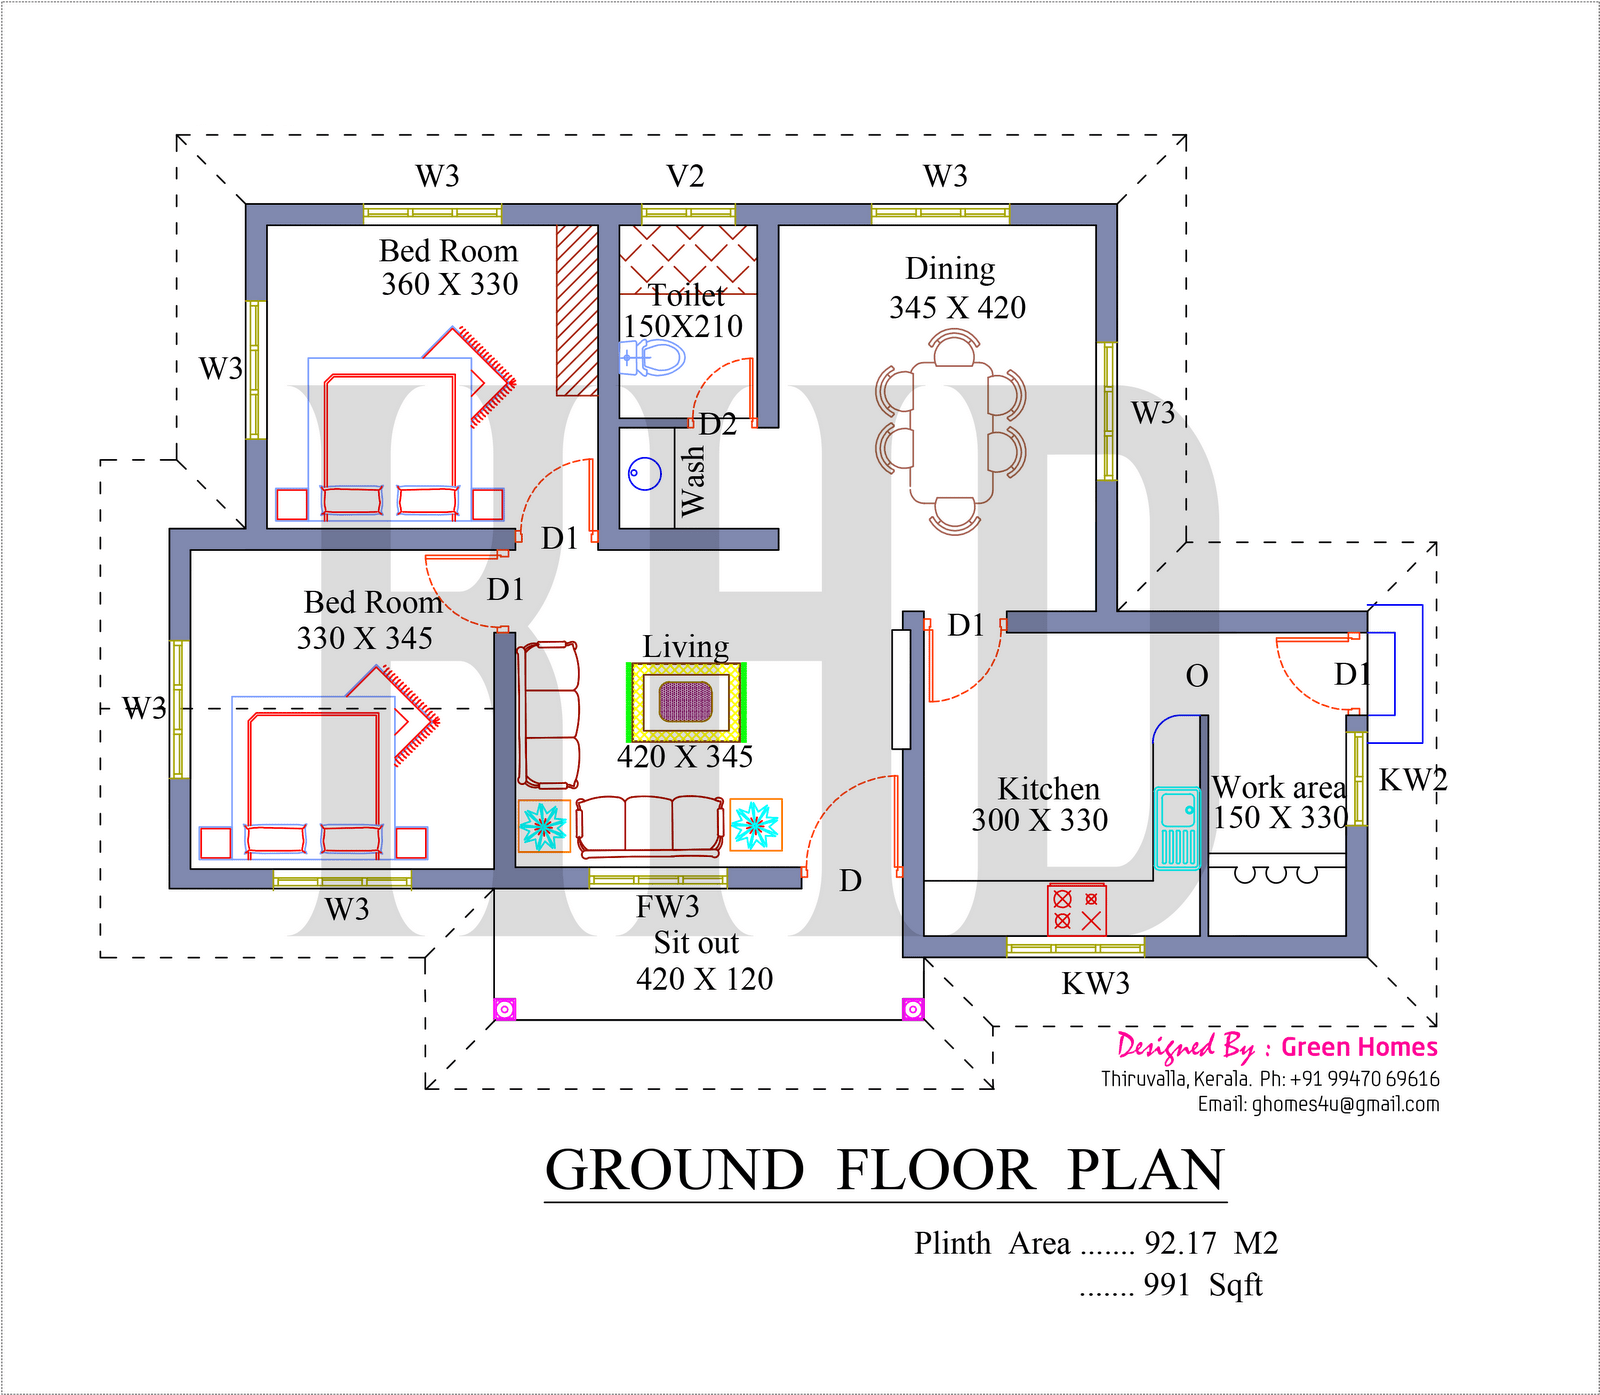 Low cost house in kerala with plan photos 991 sq ft khp for Kerala house plans with photos free